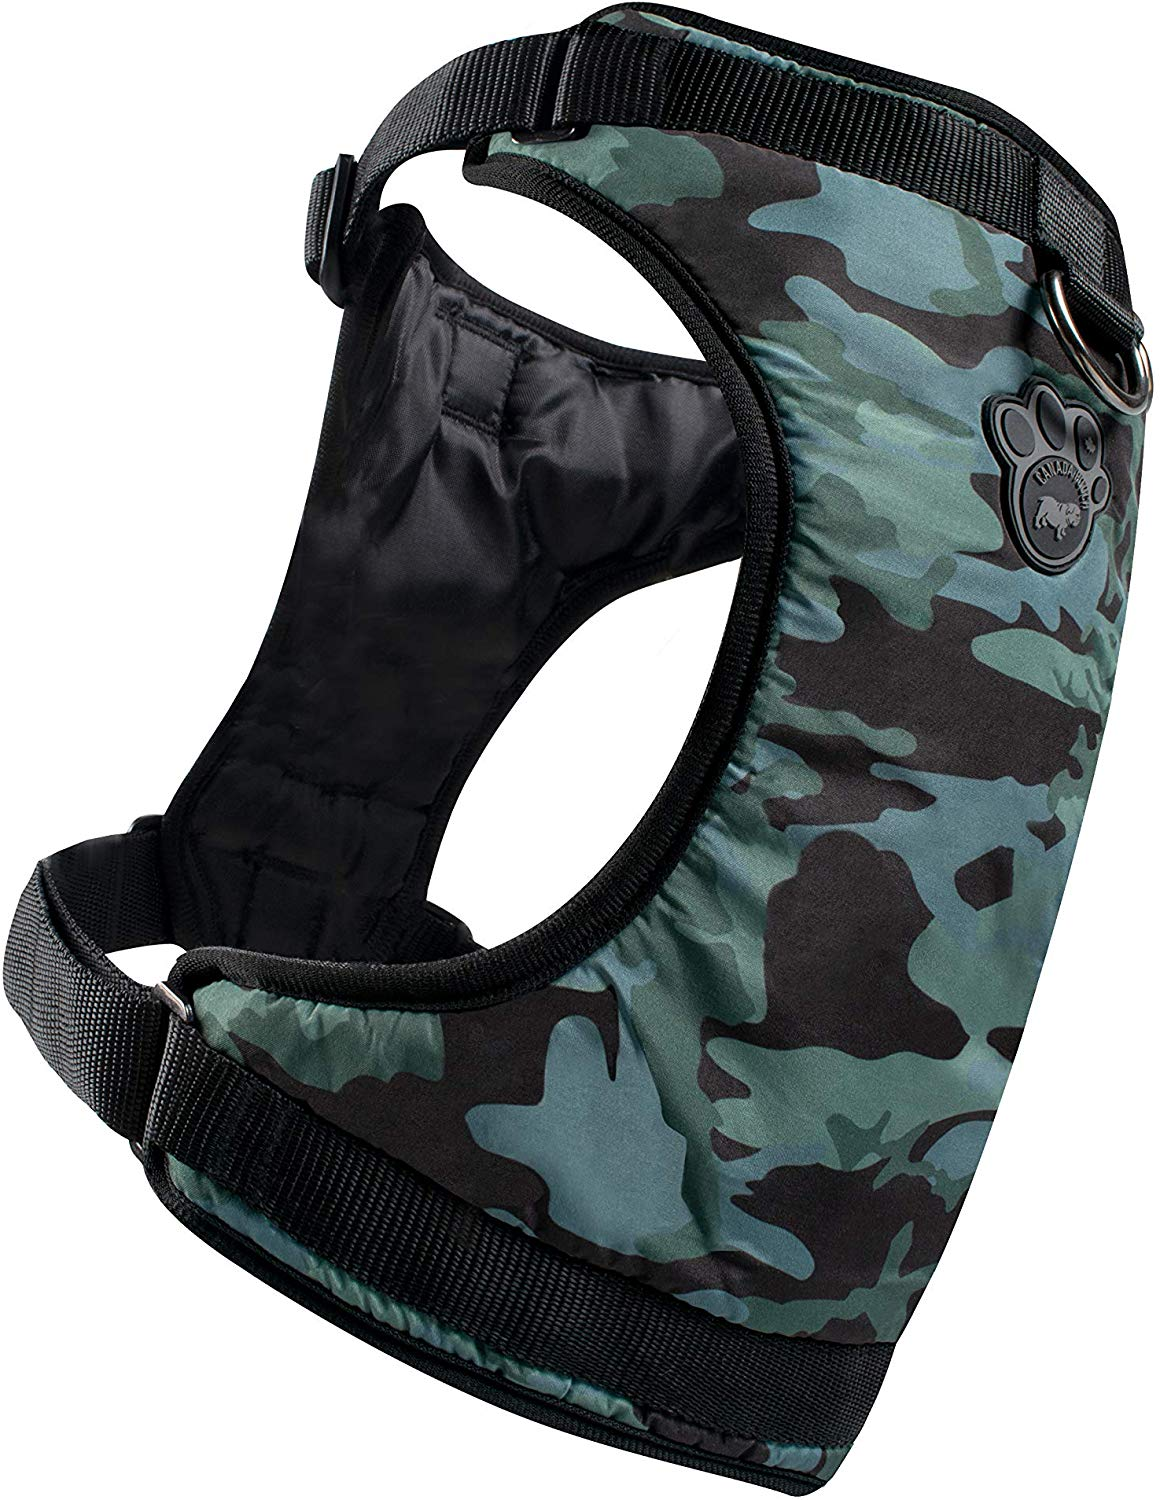 Canada Pooch The Everything Water-Resistant Dog Harness, Camo, Medium